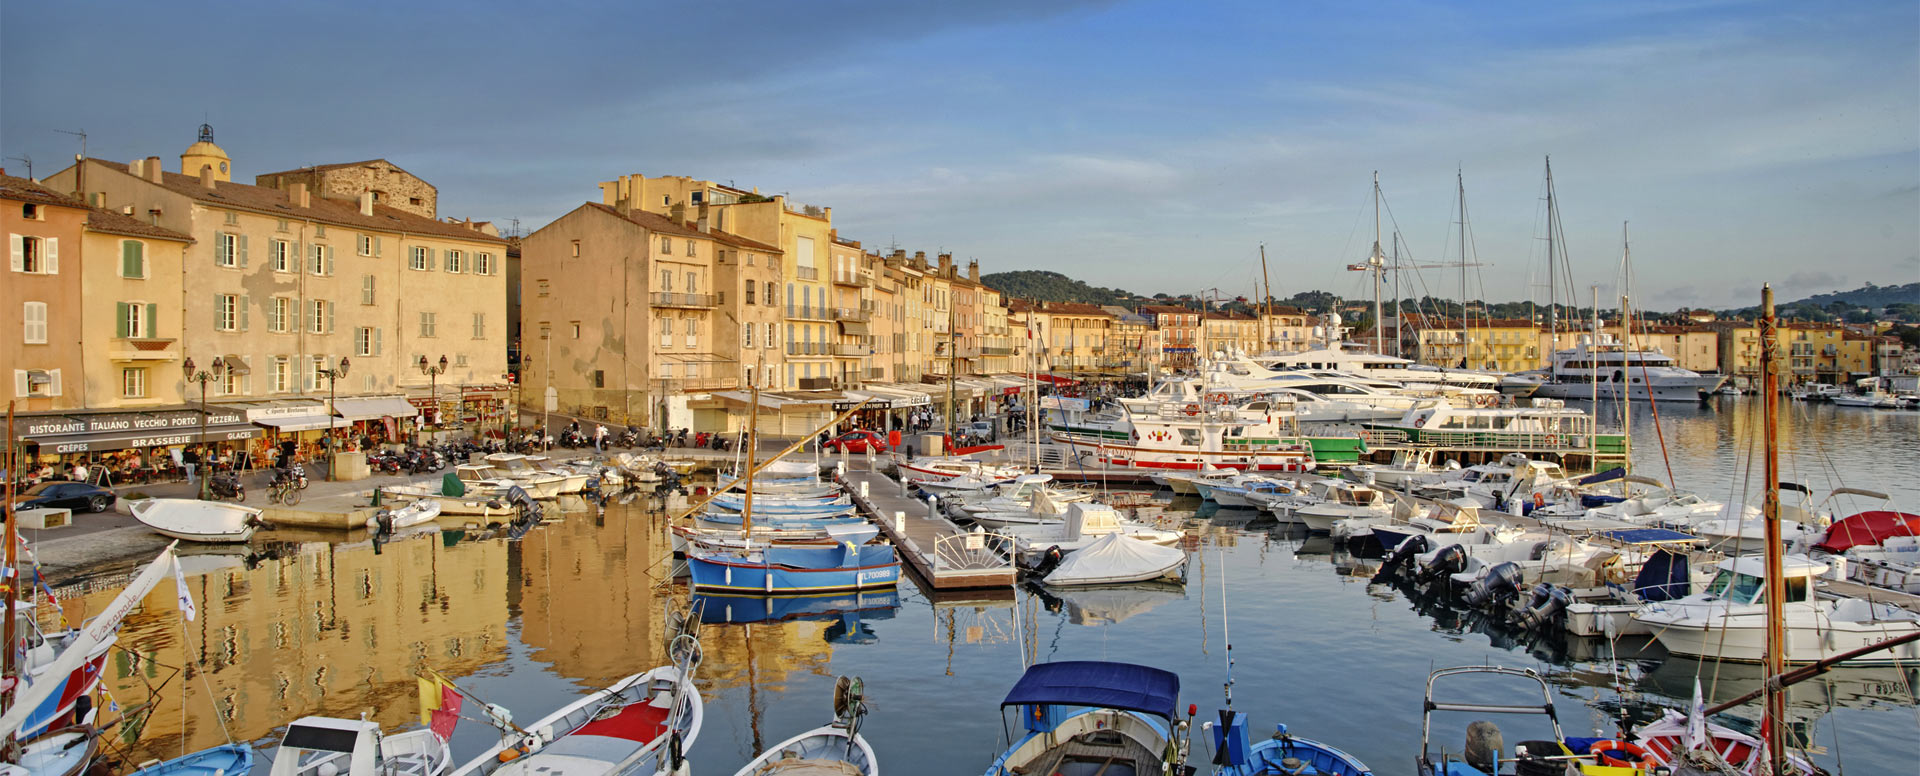 What to do in the French Riviera? Activity Guide - French Riviera